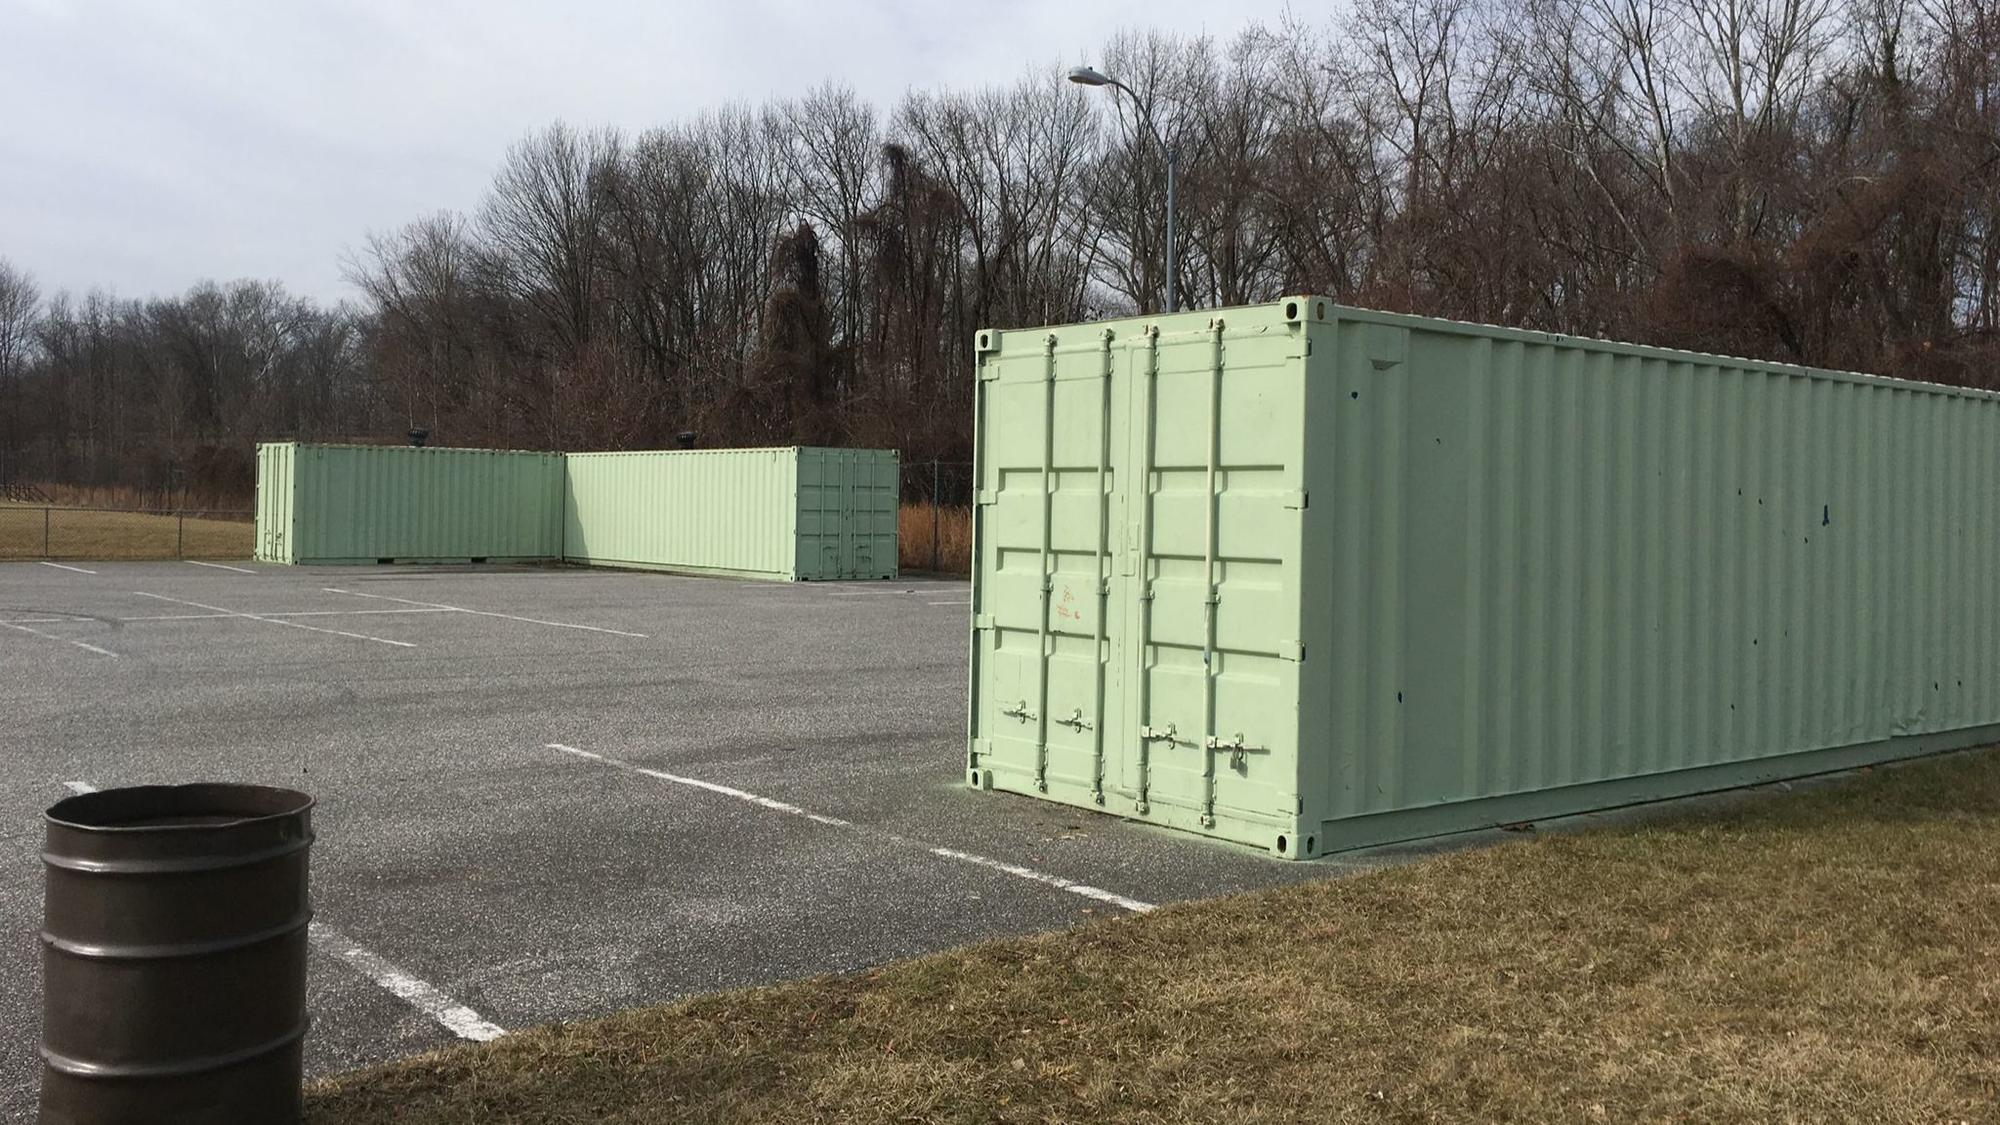 Leak in temporary parks and rec storage containers lights fire under Aberdeen council - The Aegis & Leak in temporary parks and rec storage containers lights fire under ...